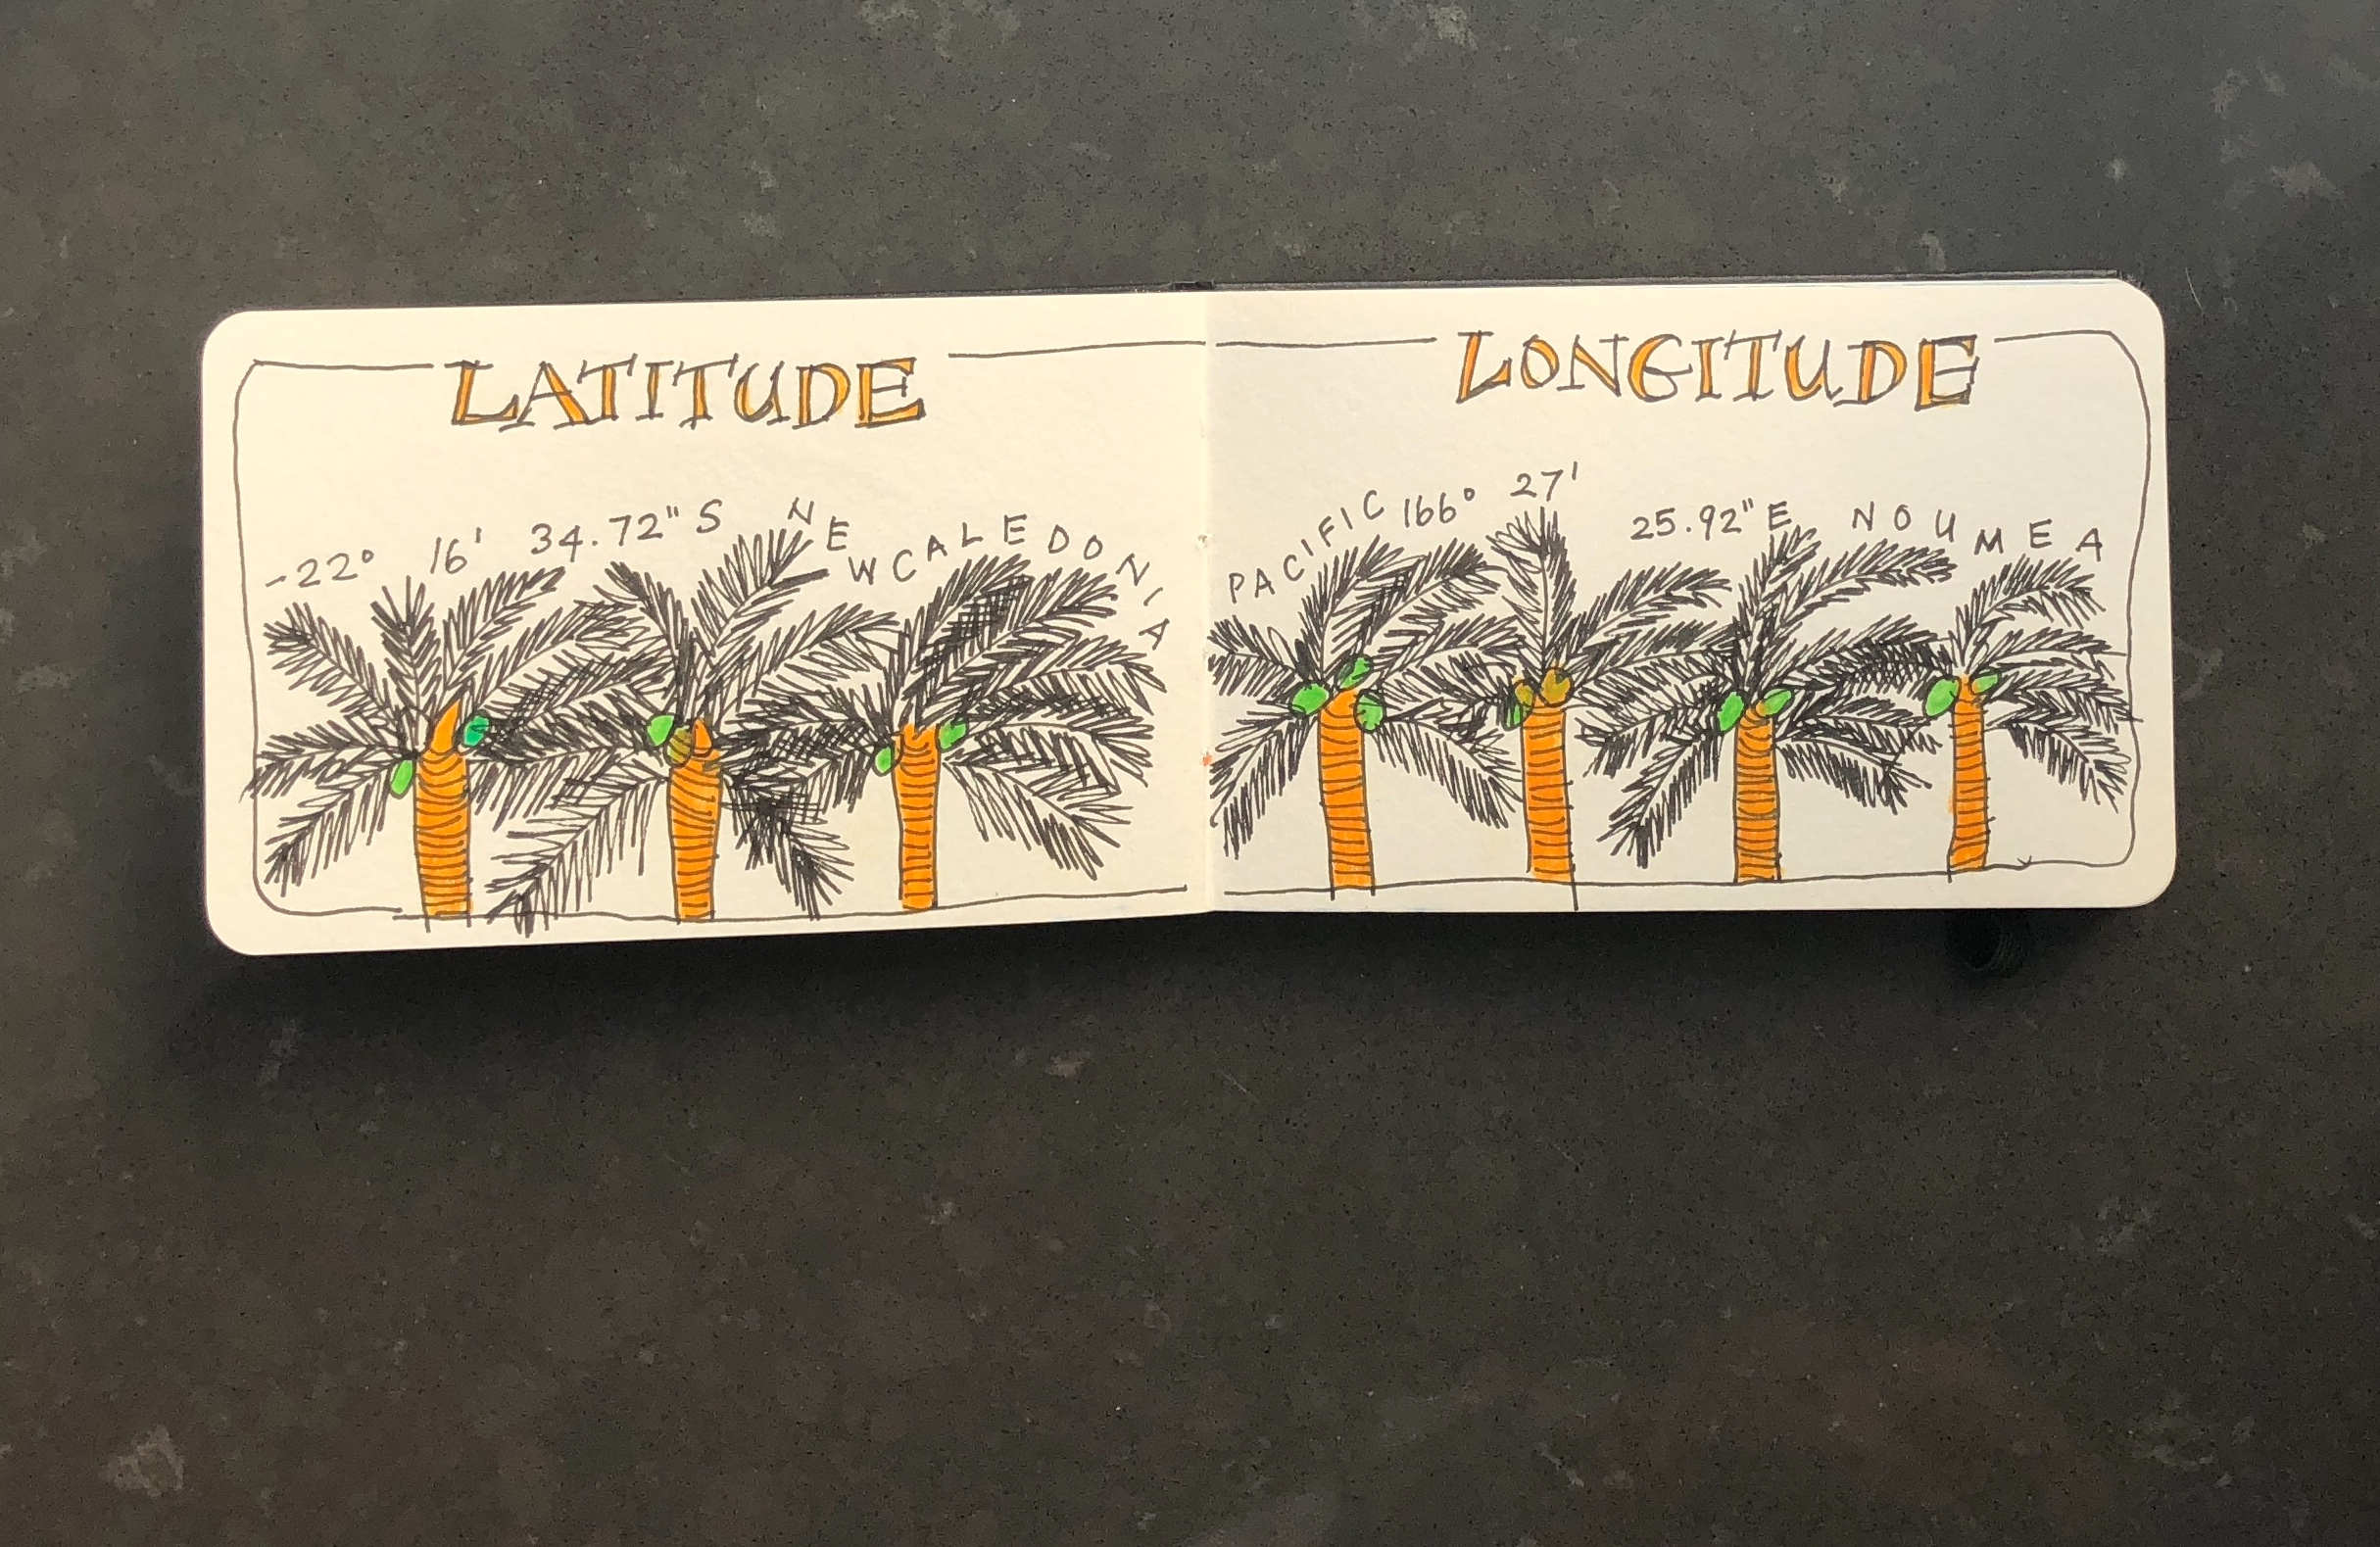 Noumea: longitude and latitude